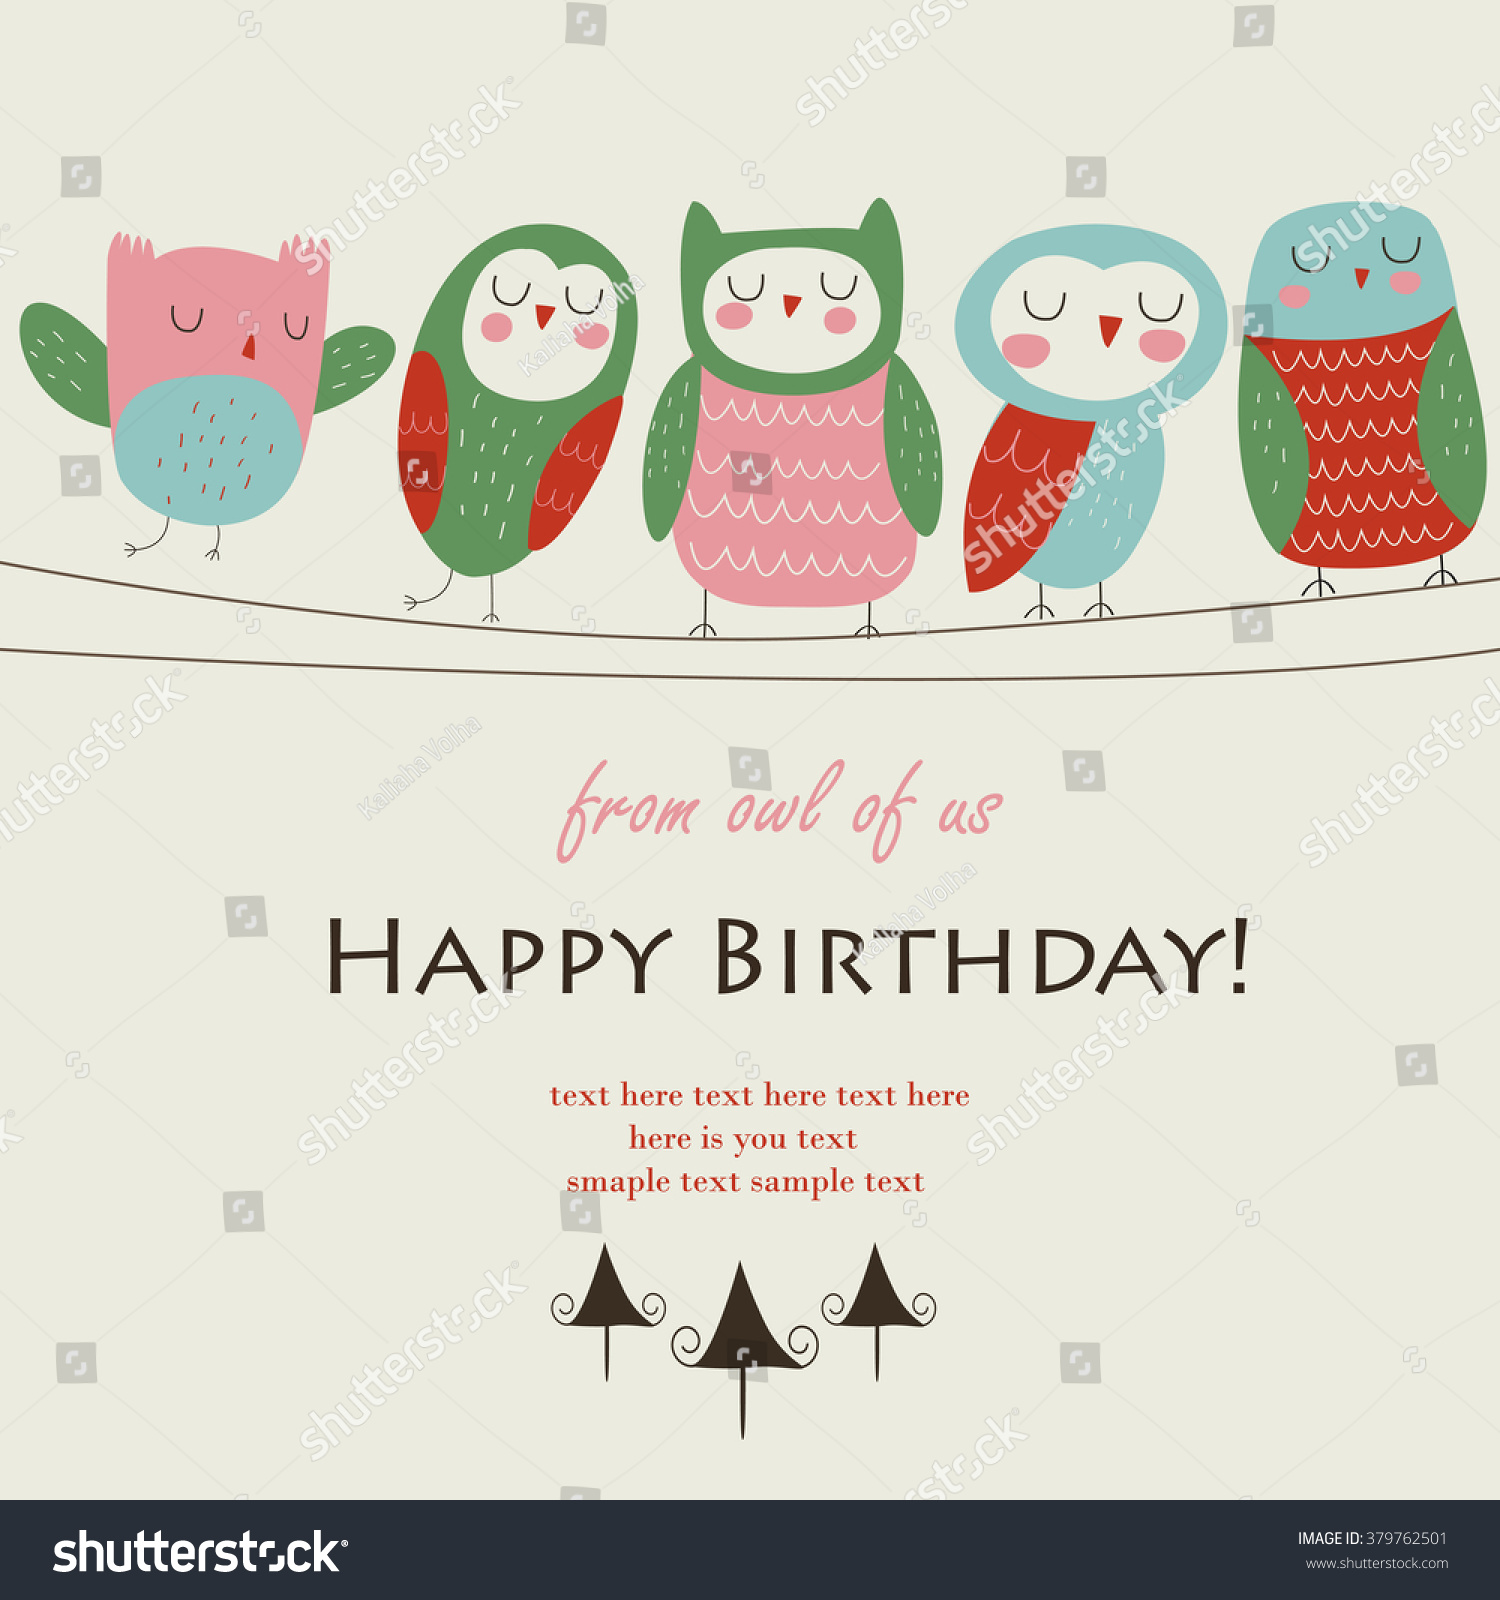 Birthday Card Cute Funny Owls Sitting Stock Vector